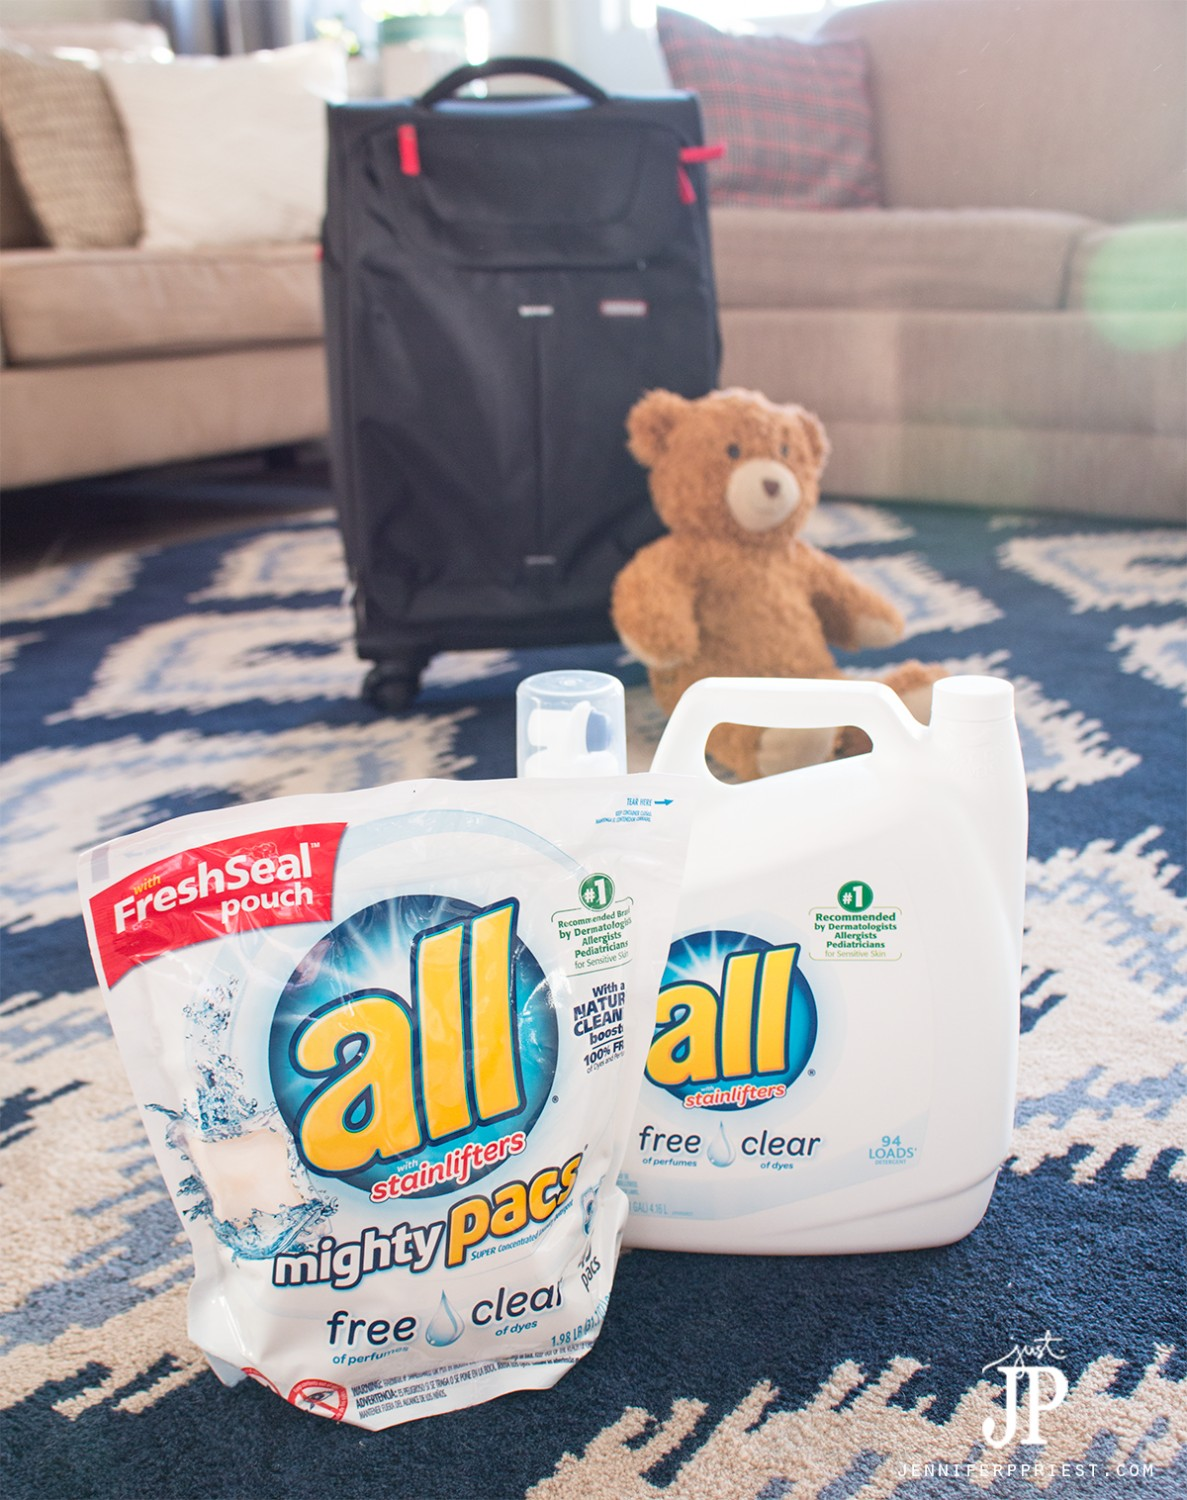 Prepare for seasonal allergies while traveling by washing clothes, stuffed animals, and fabric bags in all free and clear detergent before the trip. FREE checklist for traveling with kids with seasonal allergies.